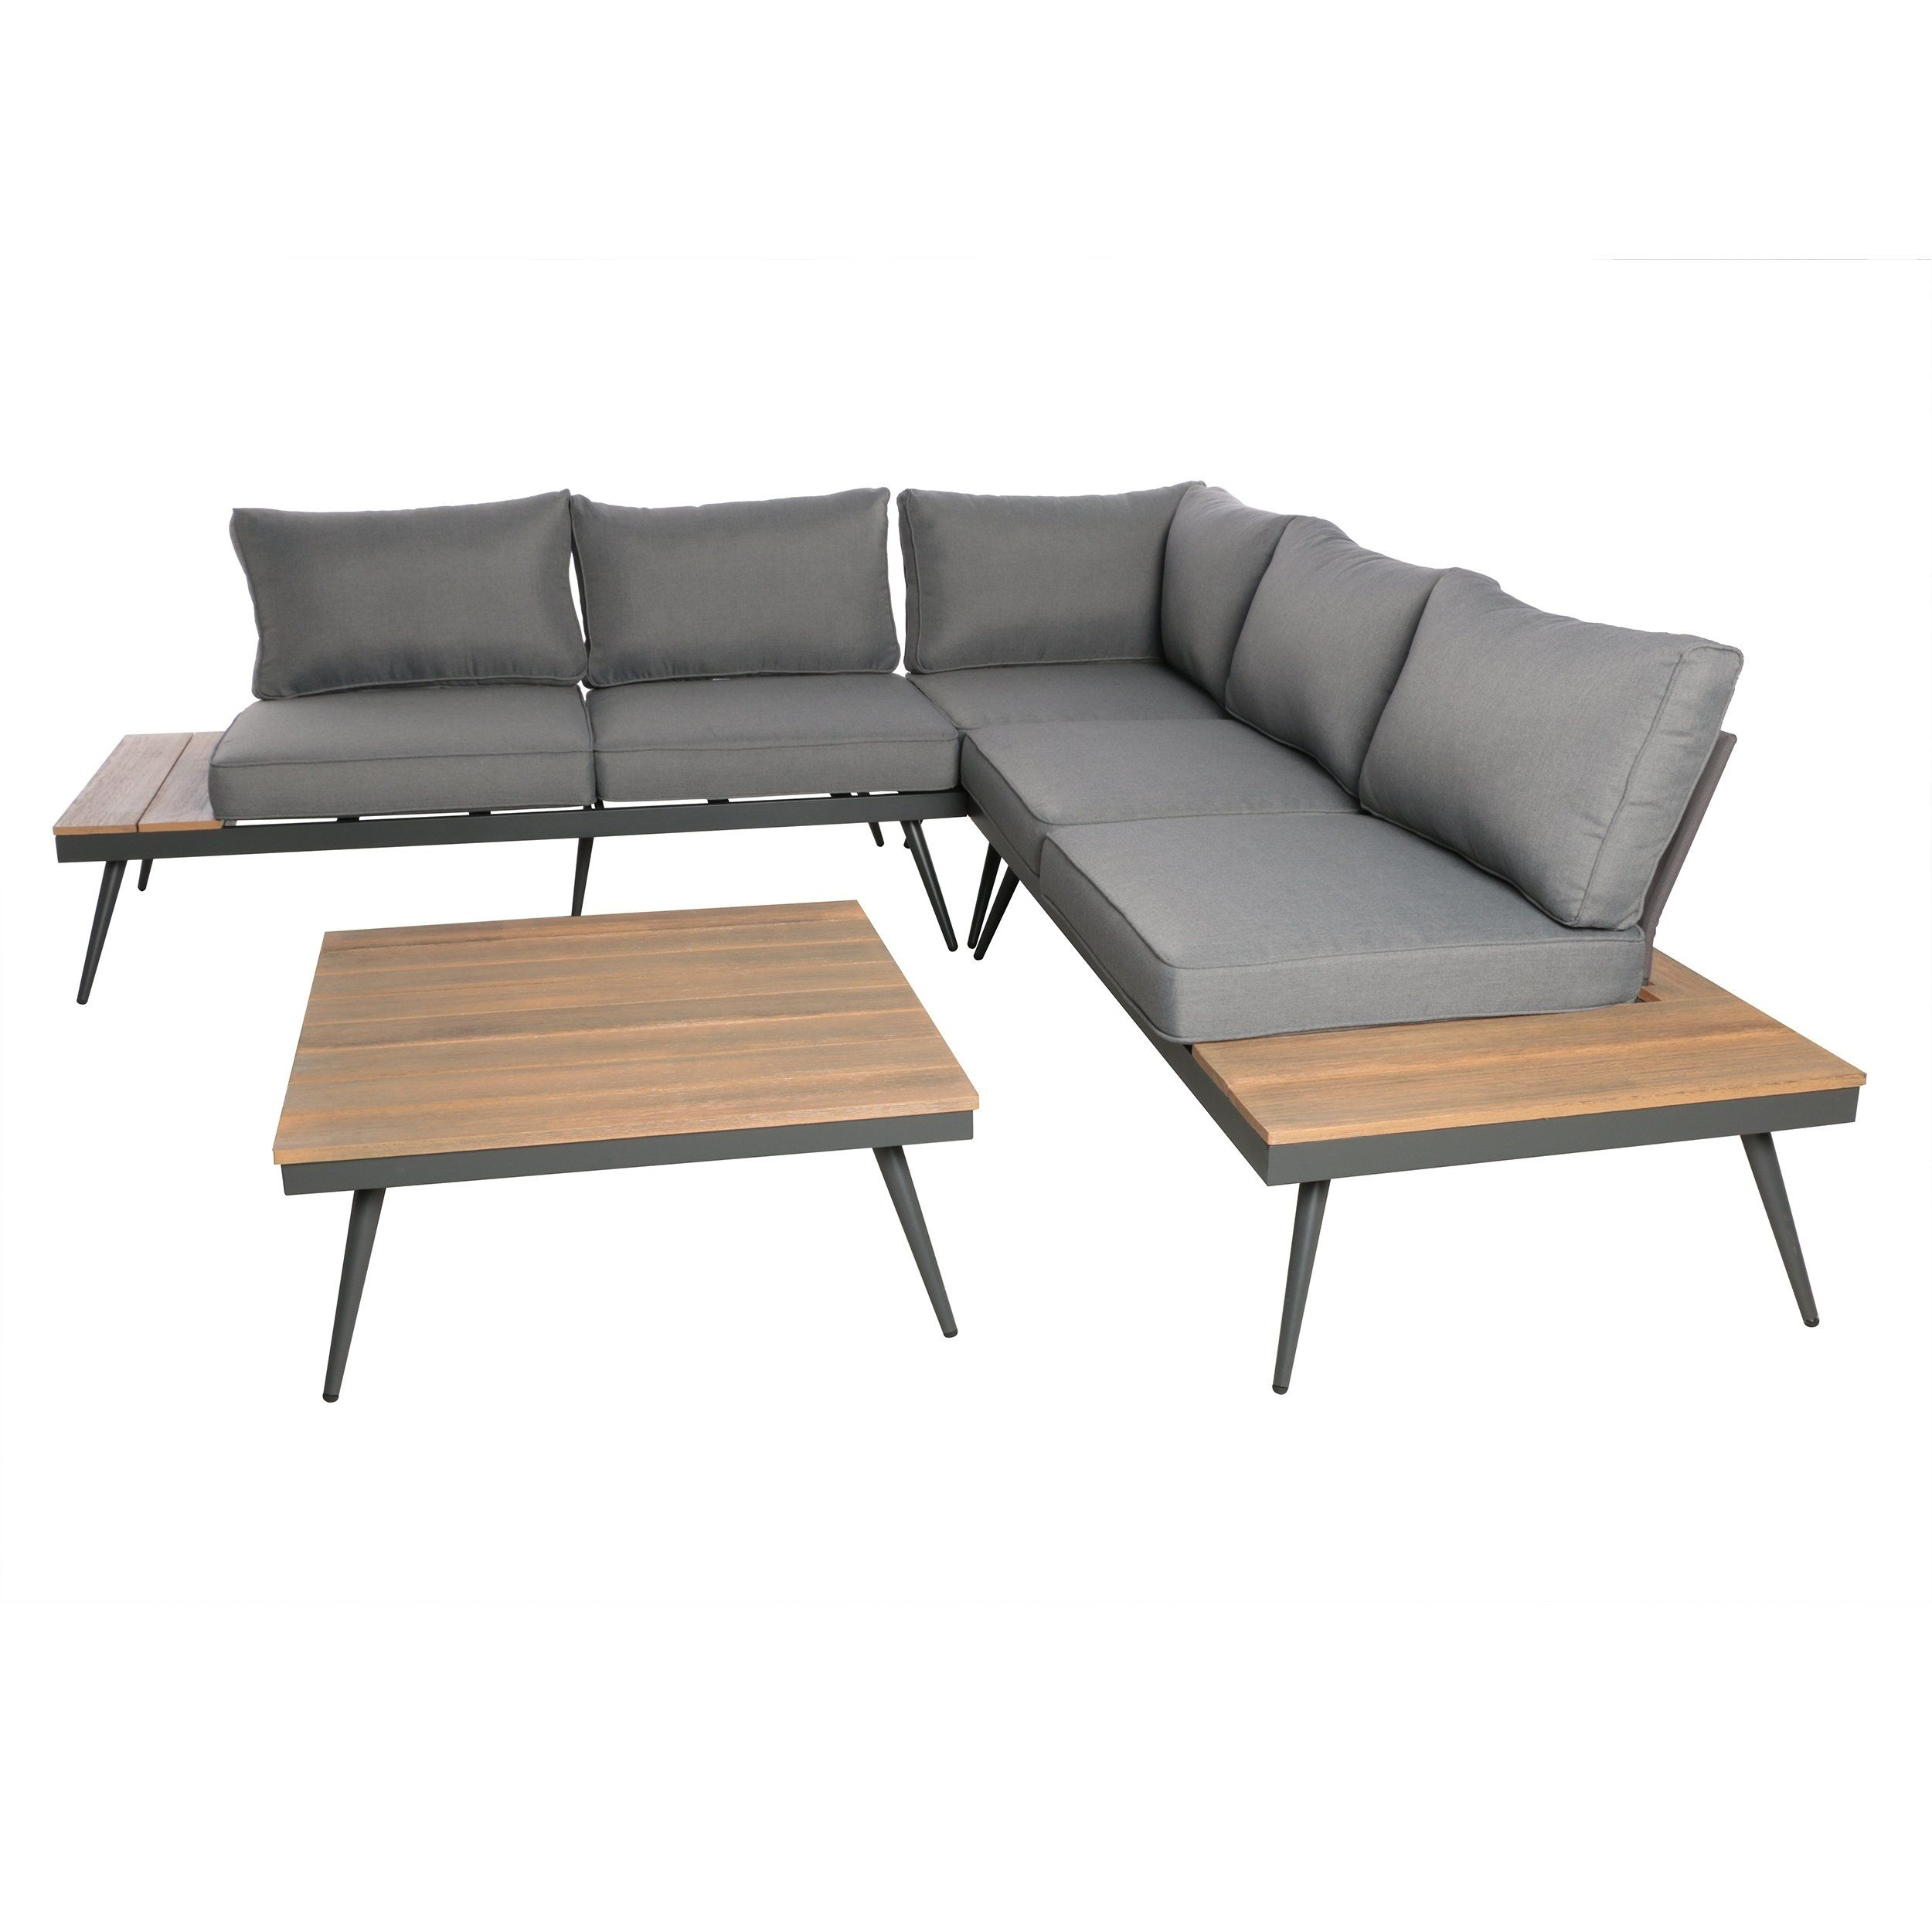 Prime Norfolk Outdoor V Shaped 5 Seater Sofa Set By Christopher Unemploymentrelief Wooden Chair Designs For Living Room Unemploymentrelieforg